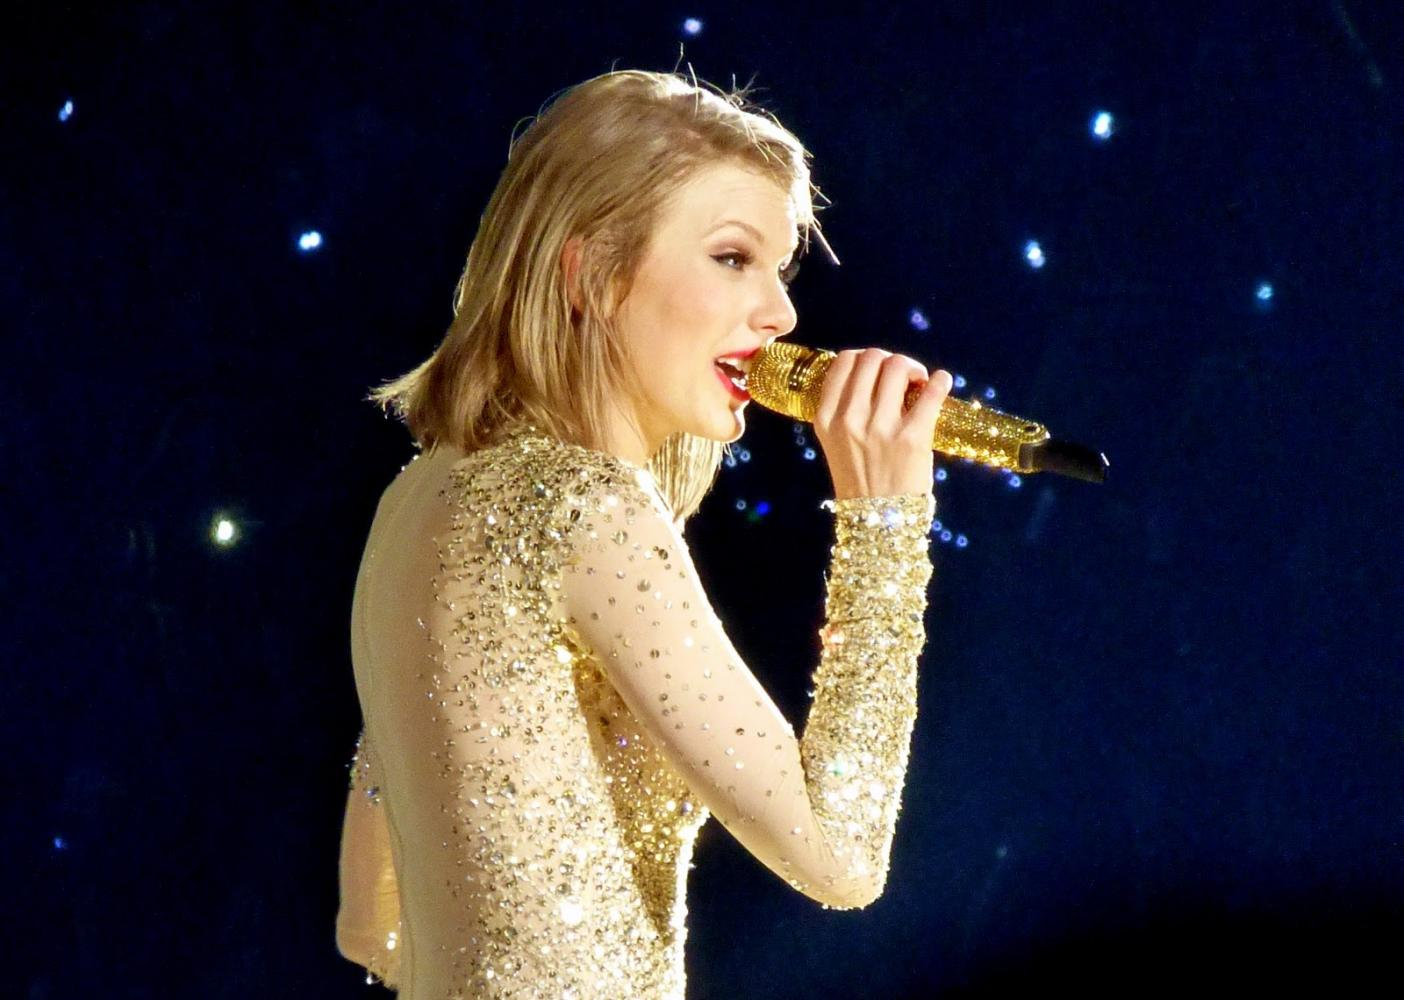 Taylor Swift's political outspokenness is a step in the right direction